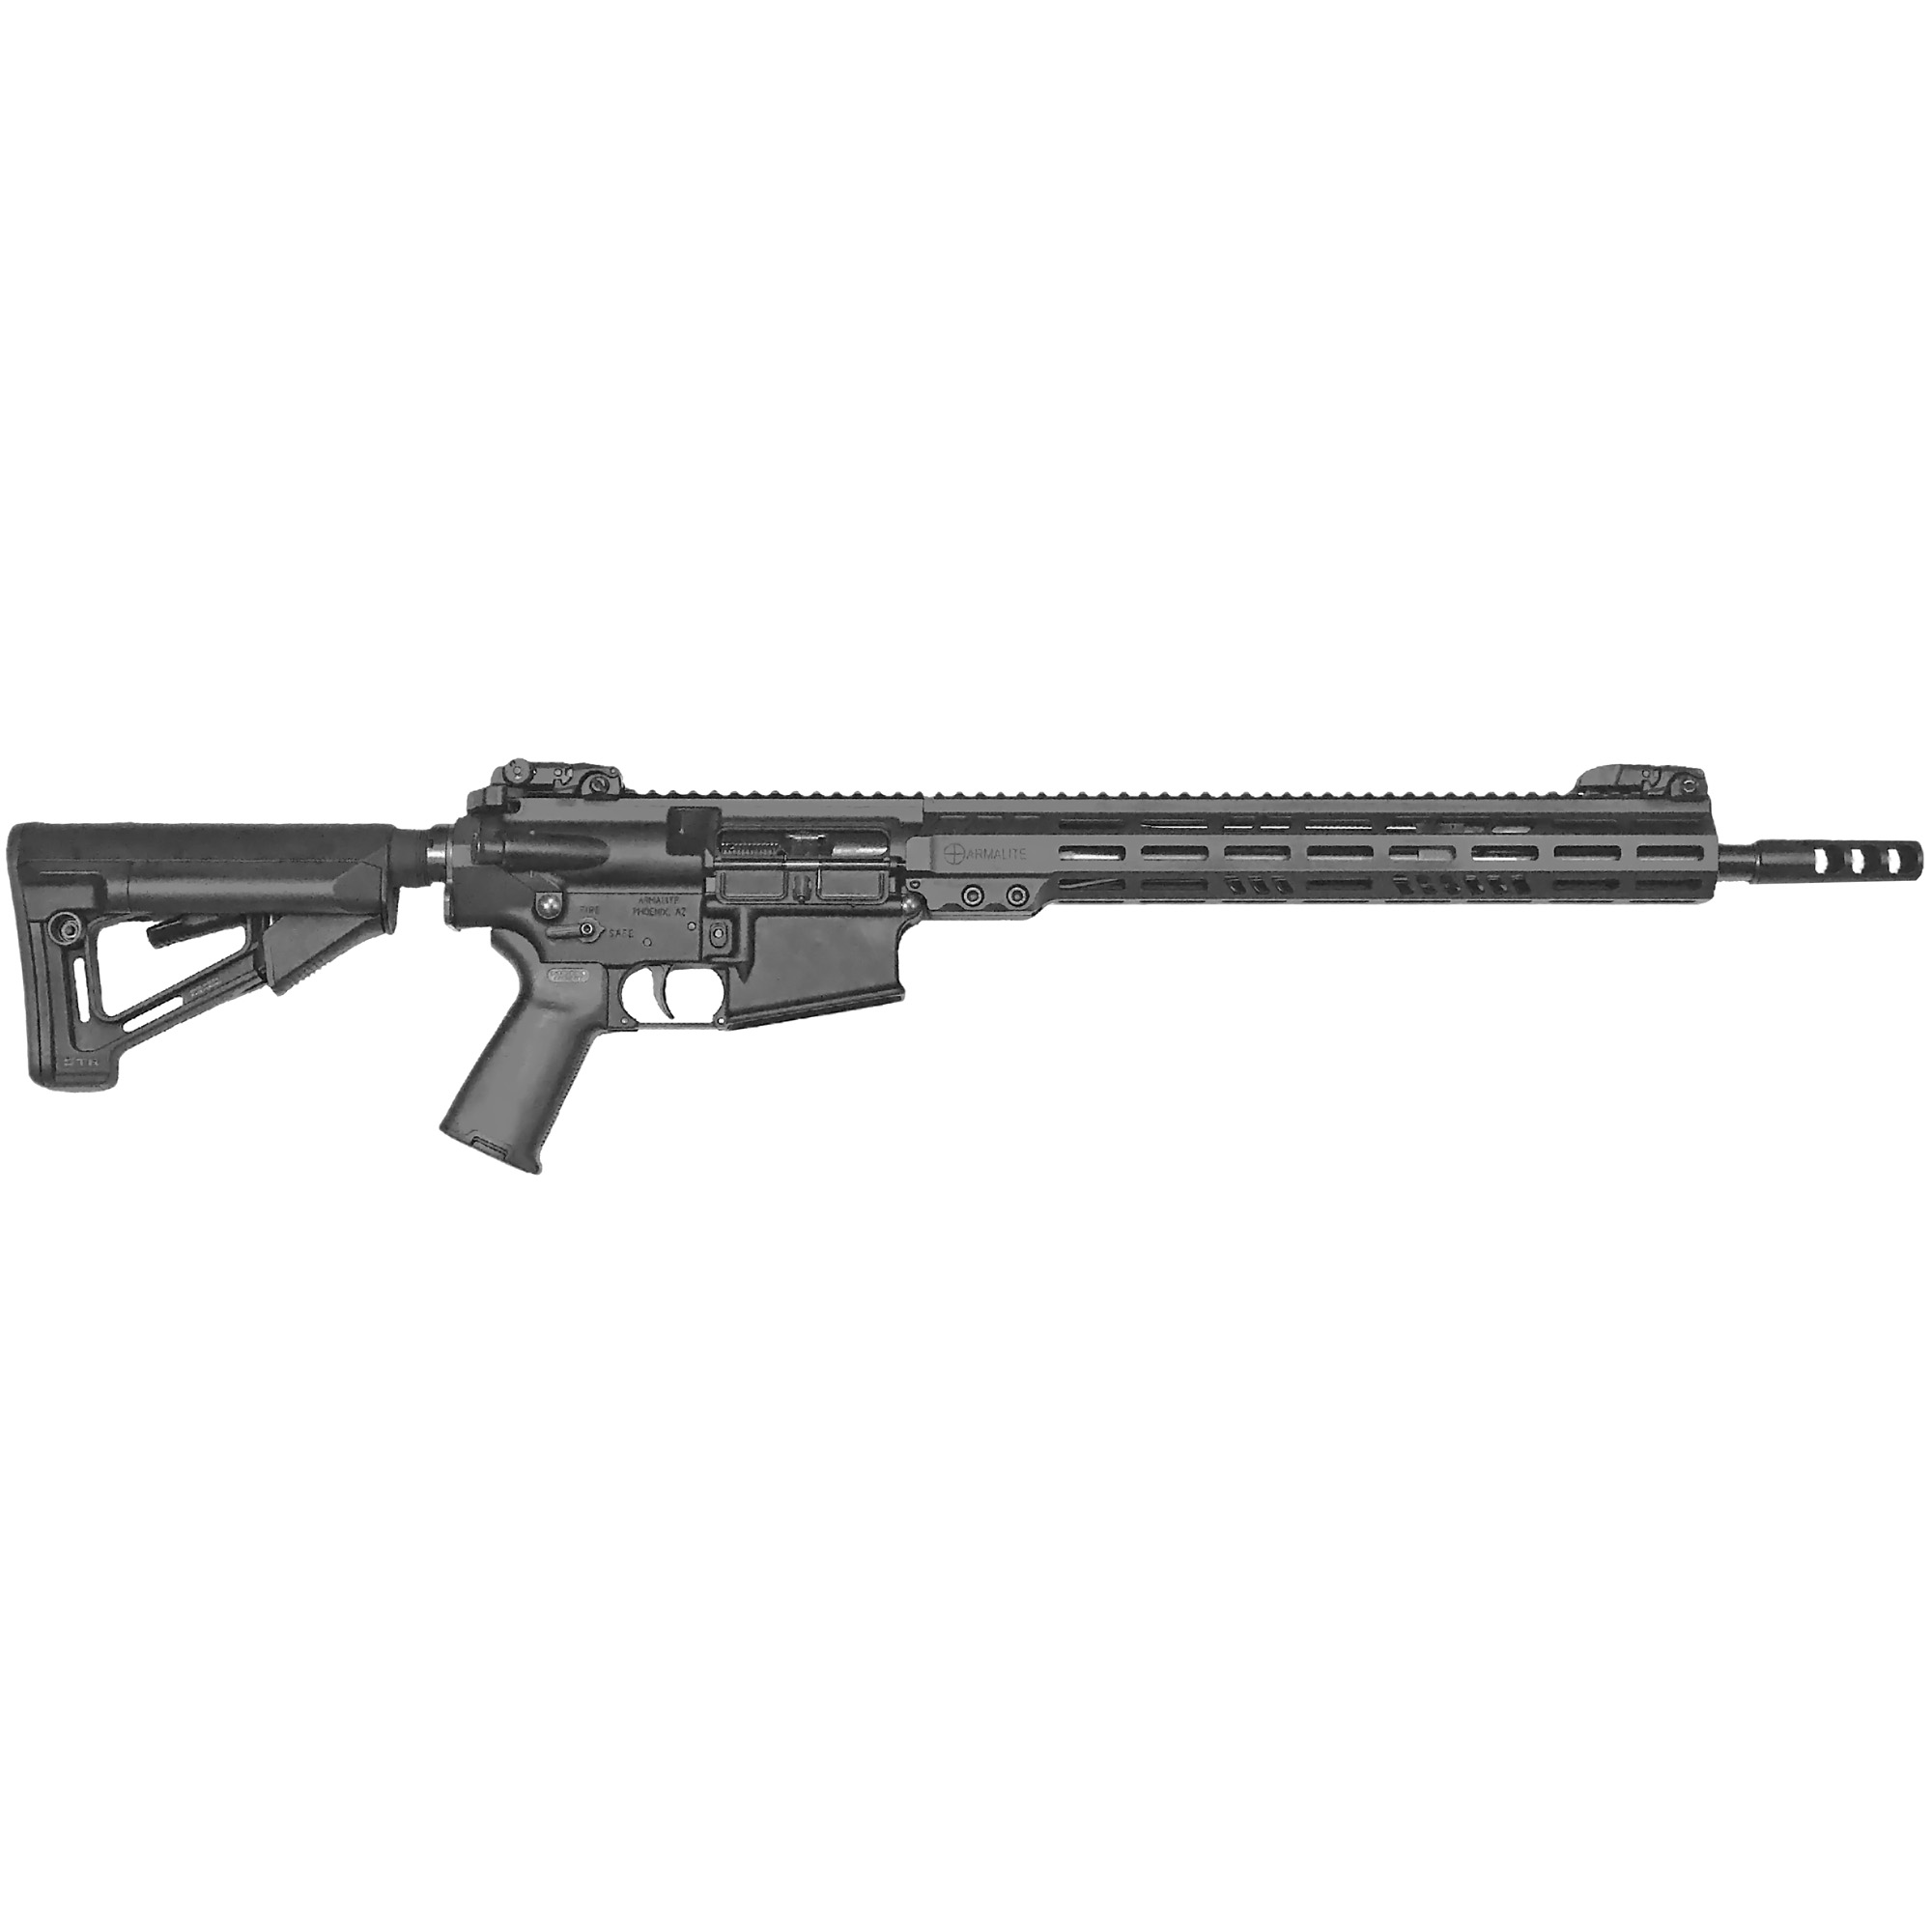 """The perfect tool for duty and defense. All Armalite Tactical Series rifles come equipped with MAGPUL MBUS flip-up sights and MOE+ pistol grips. The dual-purpose flash hiding compensator tames recoil while reducing signature. The sturdy 15"""" tactical Key-Mod handguard provides ample hand placement and a full-length MIL-STD 1913 12 o'clock rail for sights an accessories. An adjustable gas block also allows the rifle to be individually tuned for optimal performance for your choice of ammunition and/or suppressor use."""